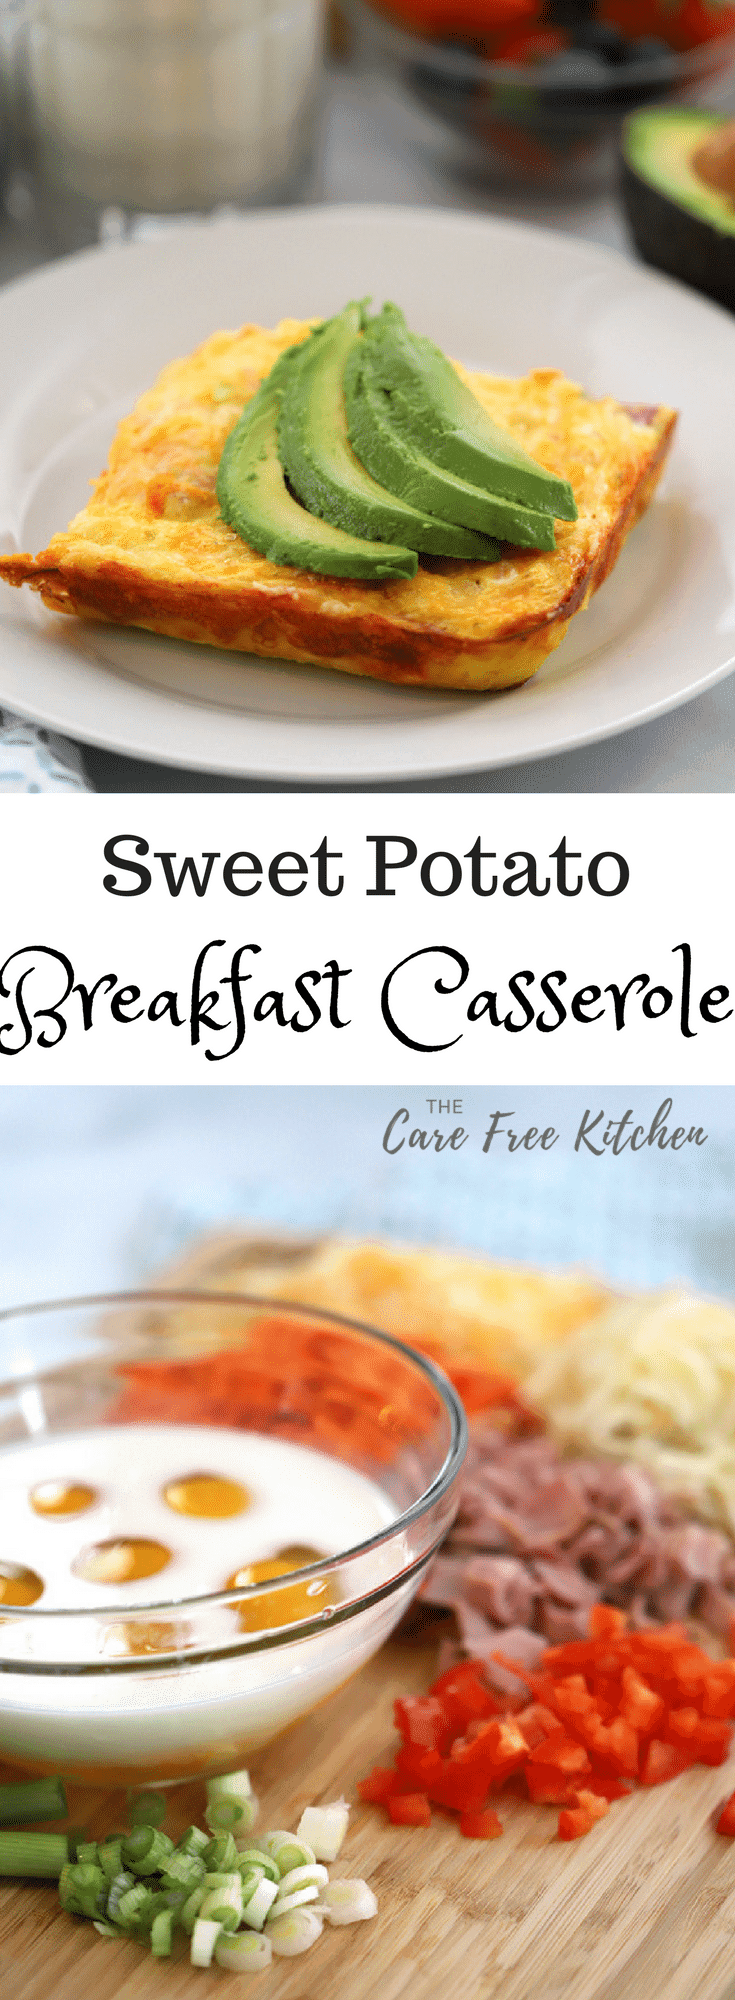 Sweet Potato Breakfast Casserole, a perfect addition to a holiday breakfast or Sunday brunch. It is a delicious combination of ham, sweet potatoes, pepper jack cheese, green onion and red pepper!